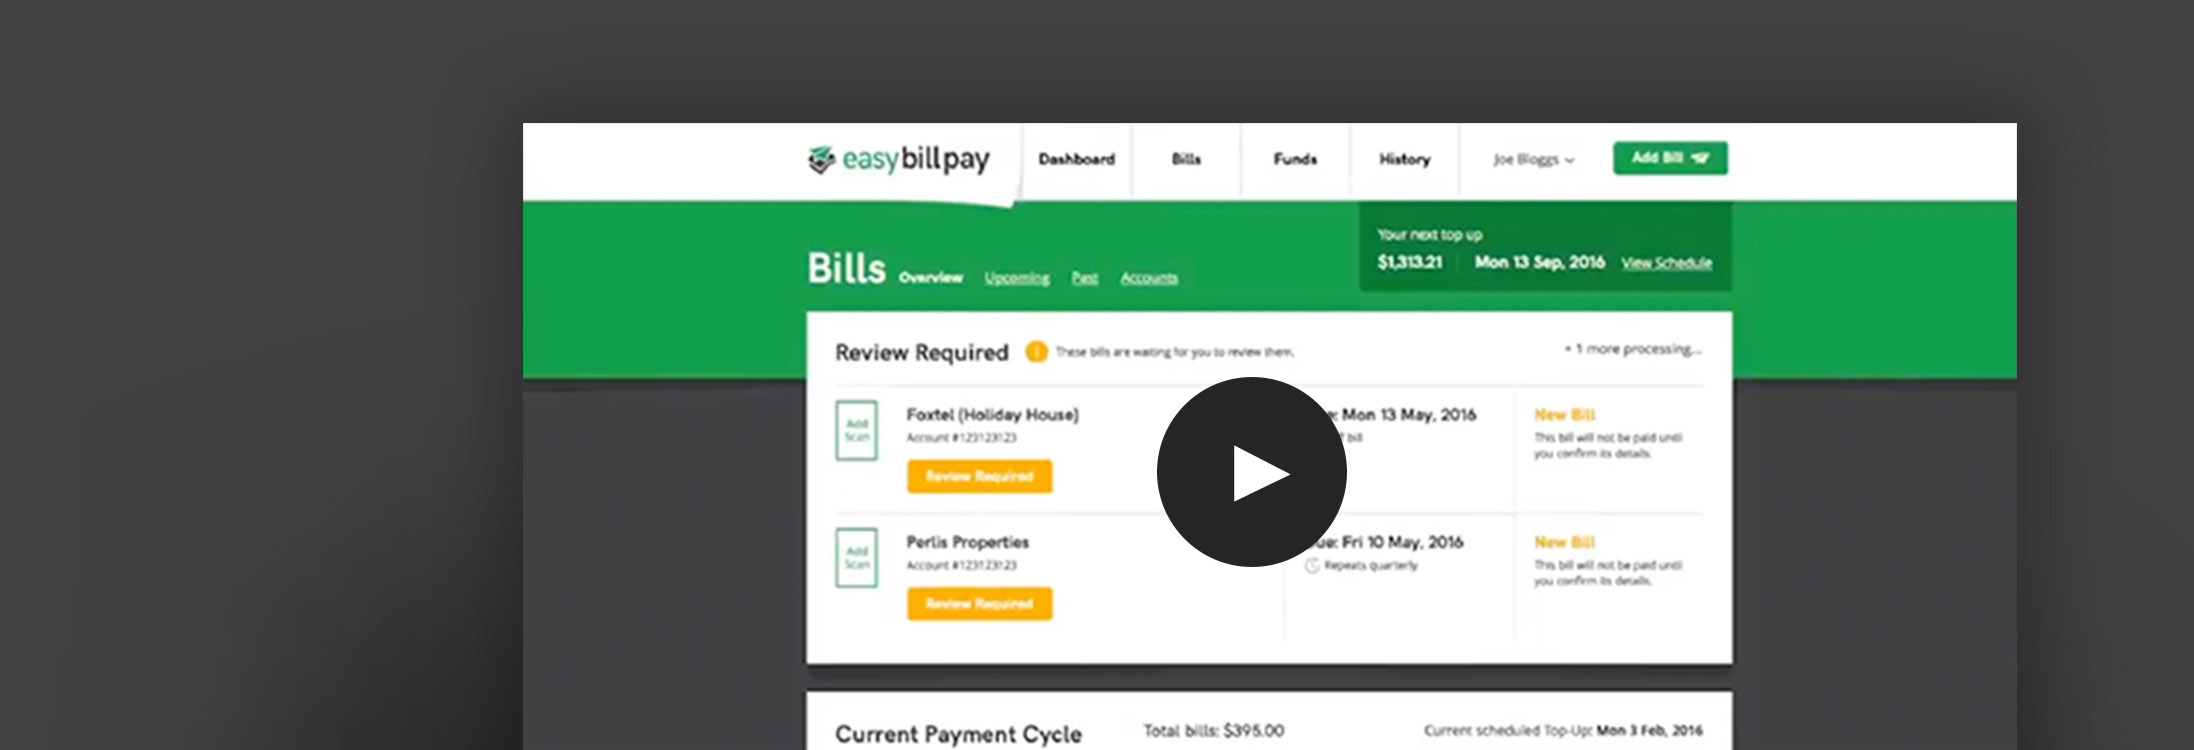 See how Easy Bill Pay works